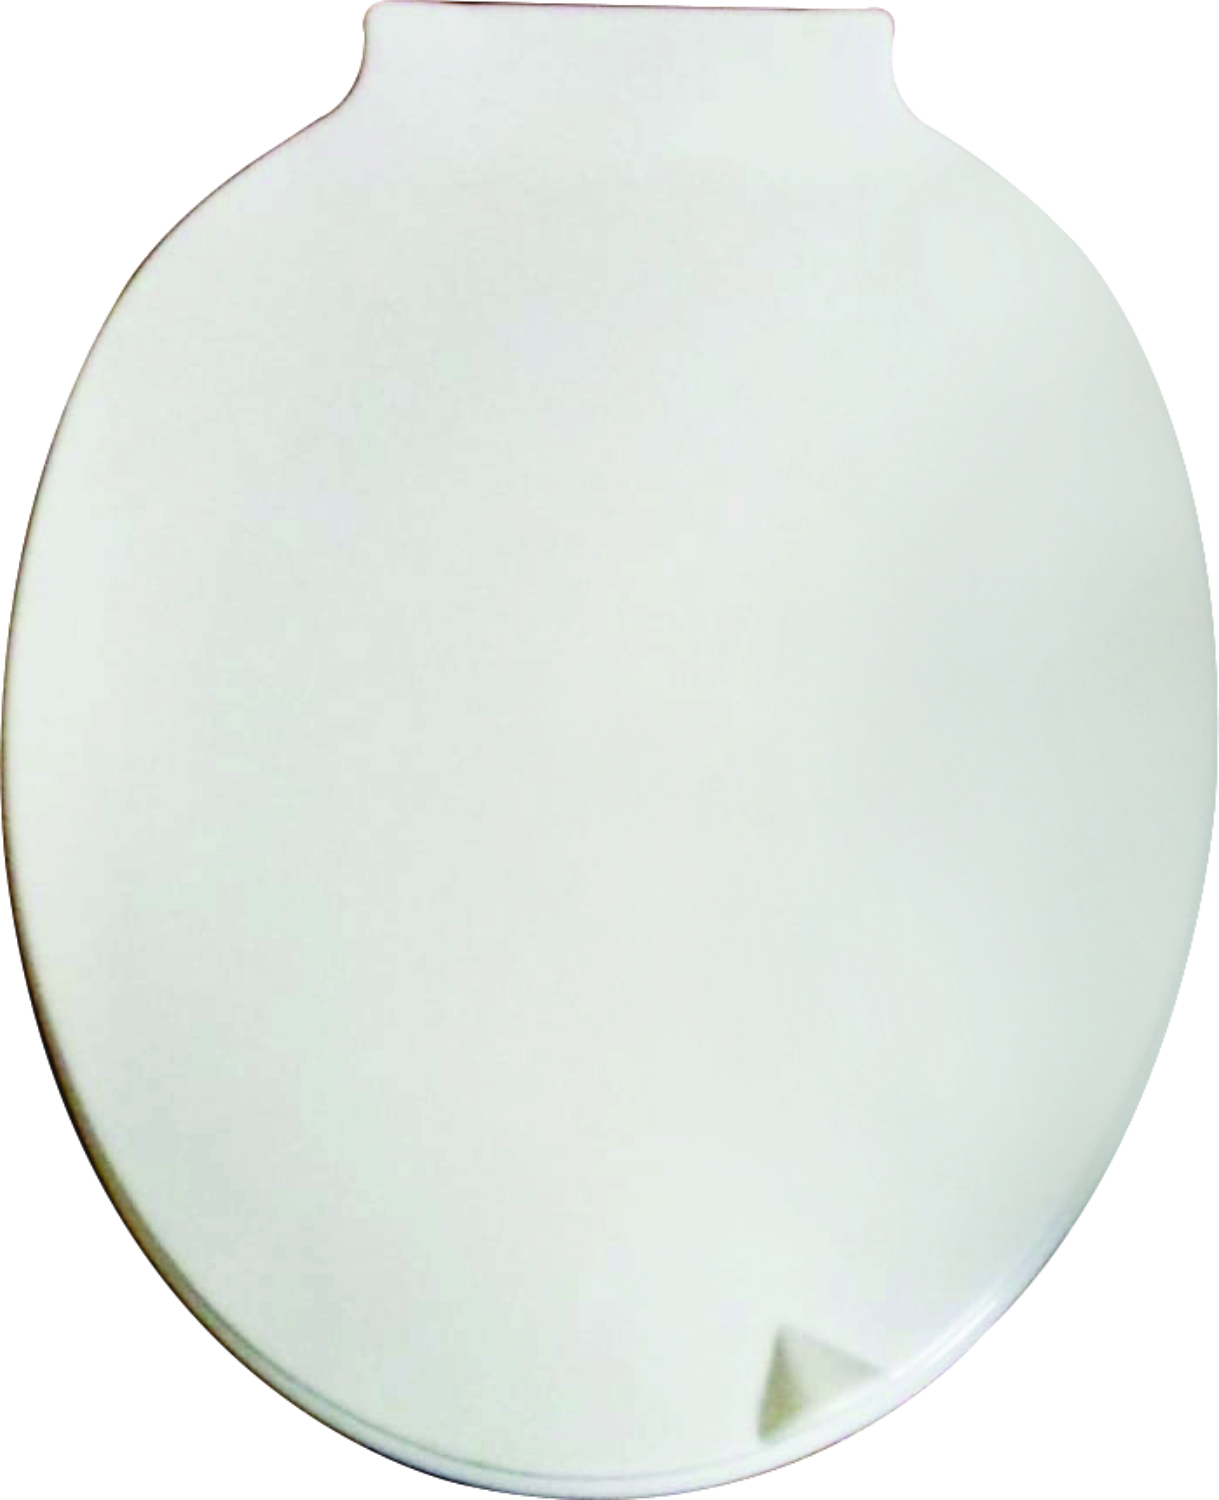 Toilet Round Seat Cover